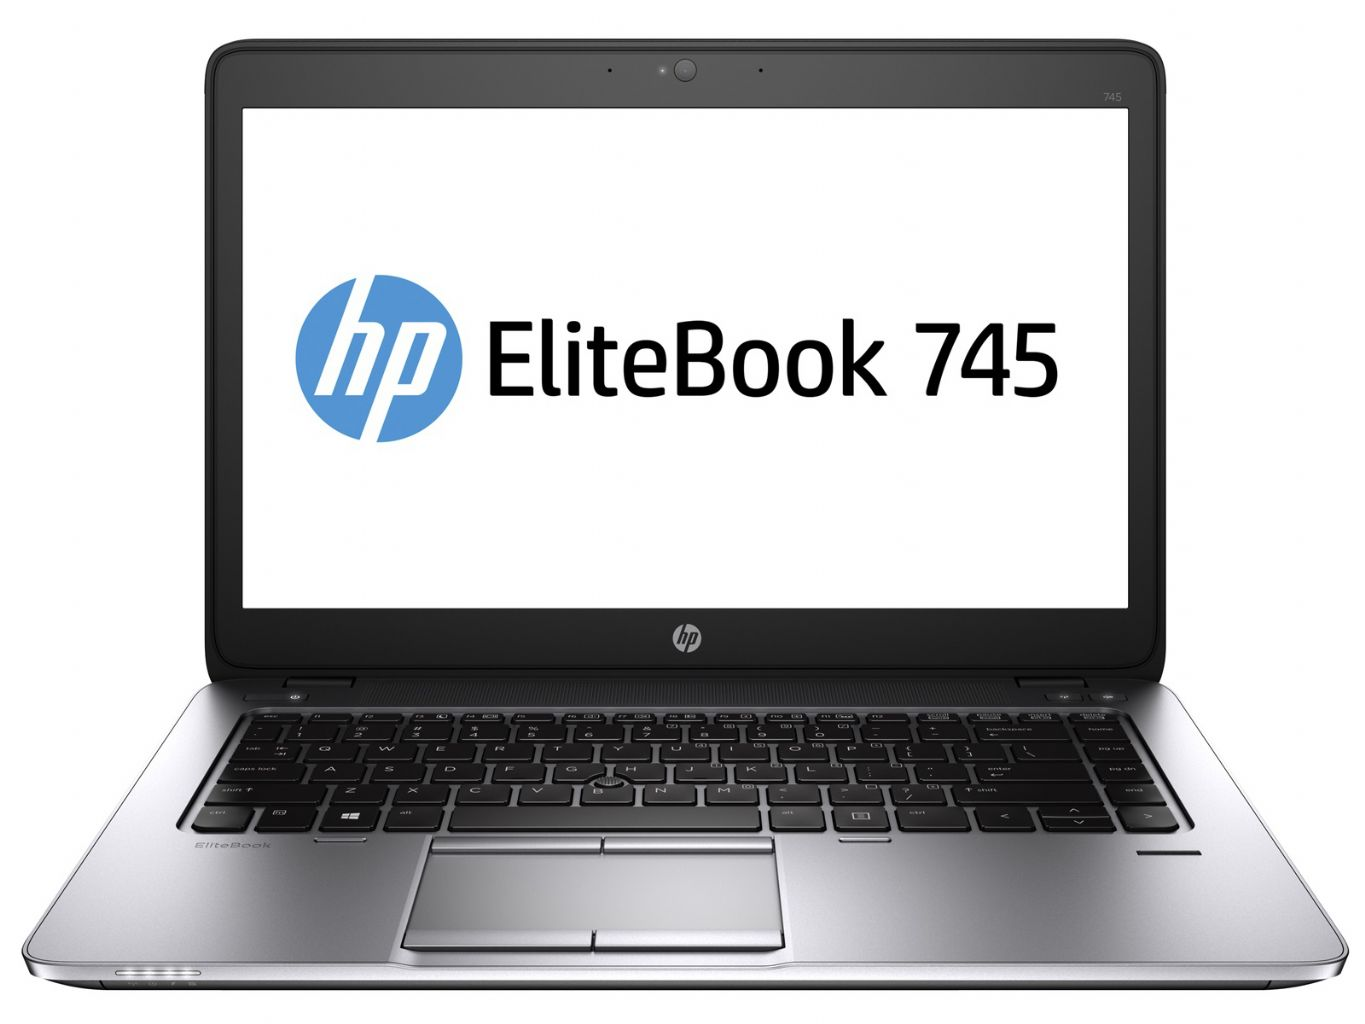 HP EliteBook 745 G2 14' - A10 PRO-7150B 2,1Ghz (Up3,3Ghz) Quad Core -  8GB -  SSD 256gb - Win10Pro - Refurbished Gar@12M GRADO A